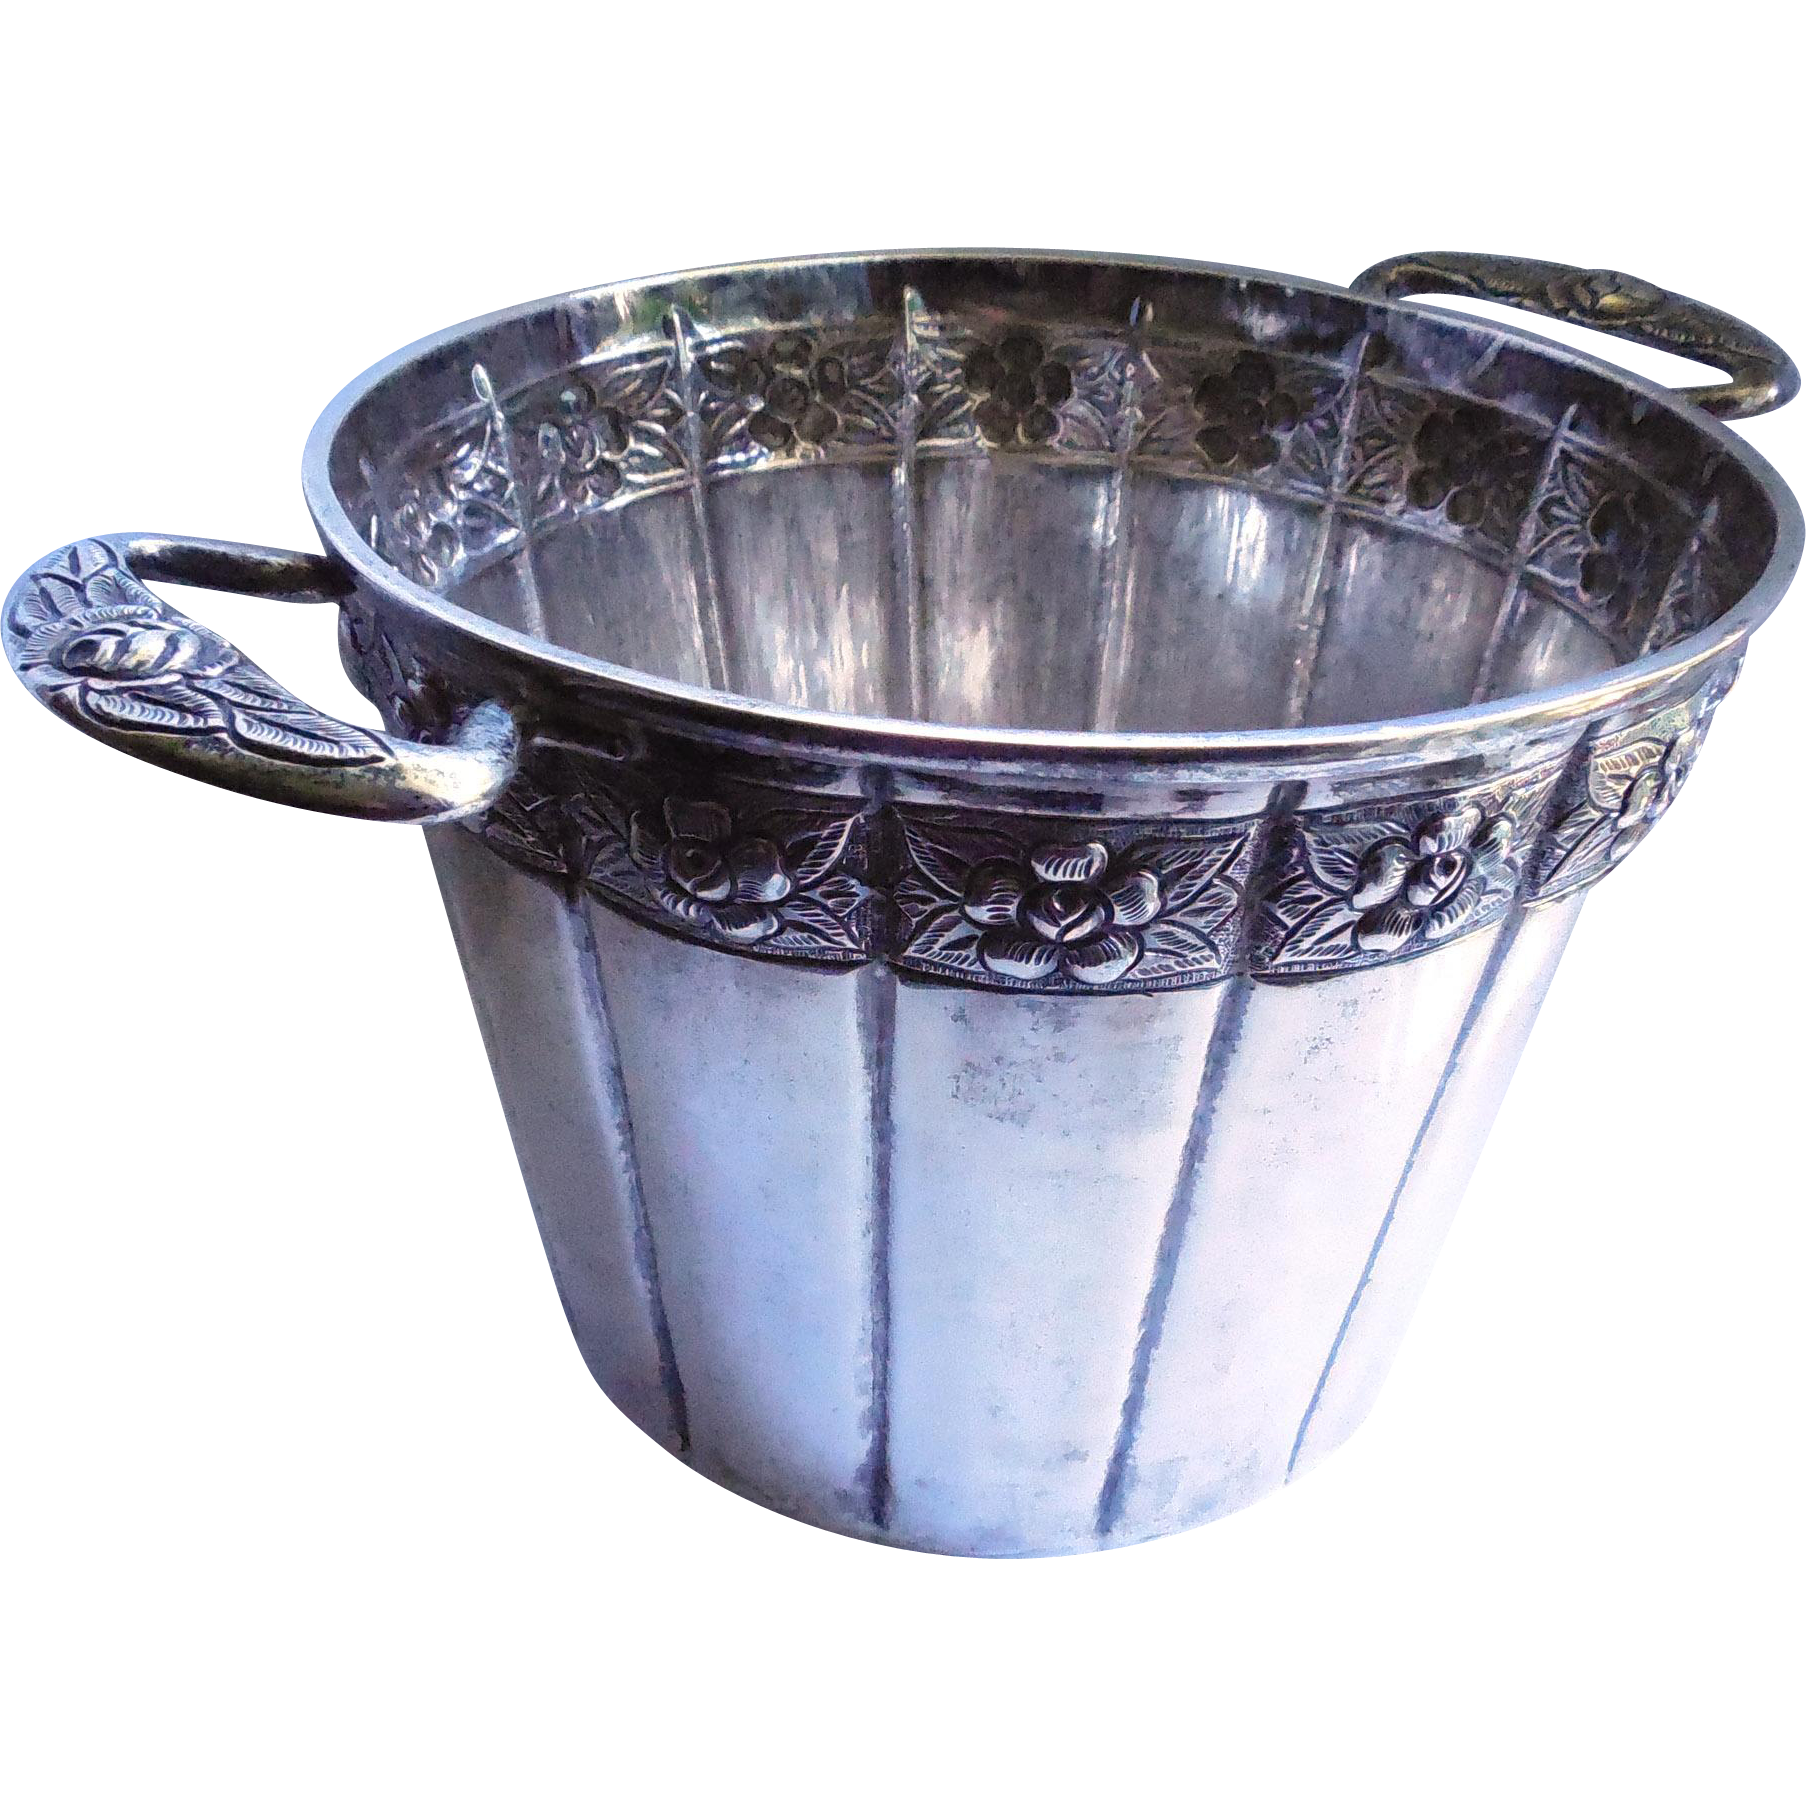 Queen Anne Vintage Sterling Silver Ice Bucket / Champagne Chiller - Pre Eagle Mexico - Signed Vigueras